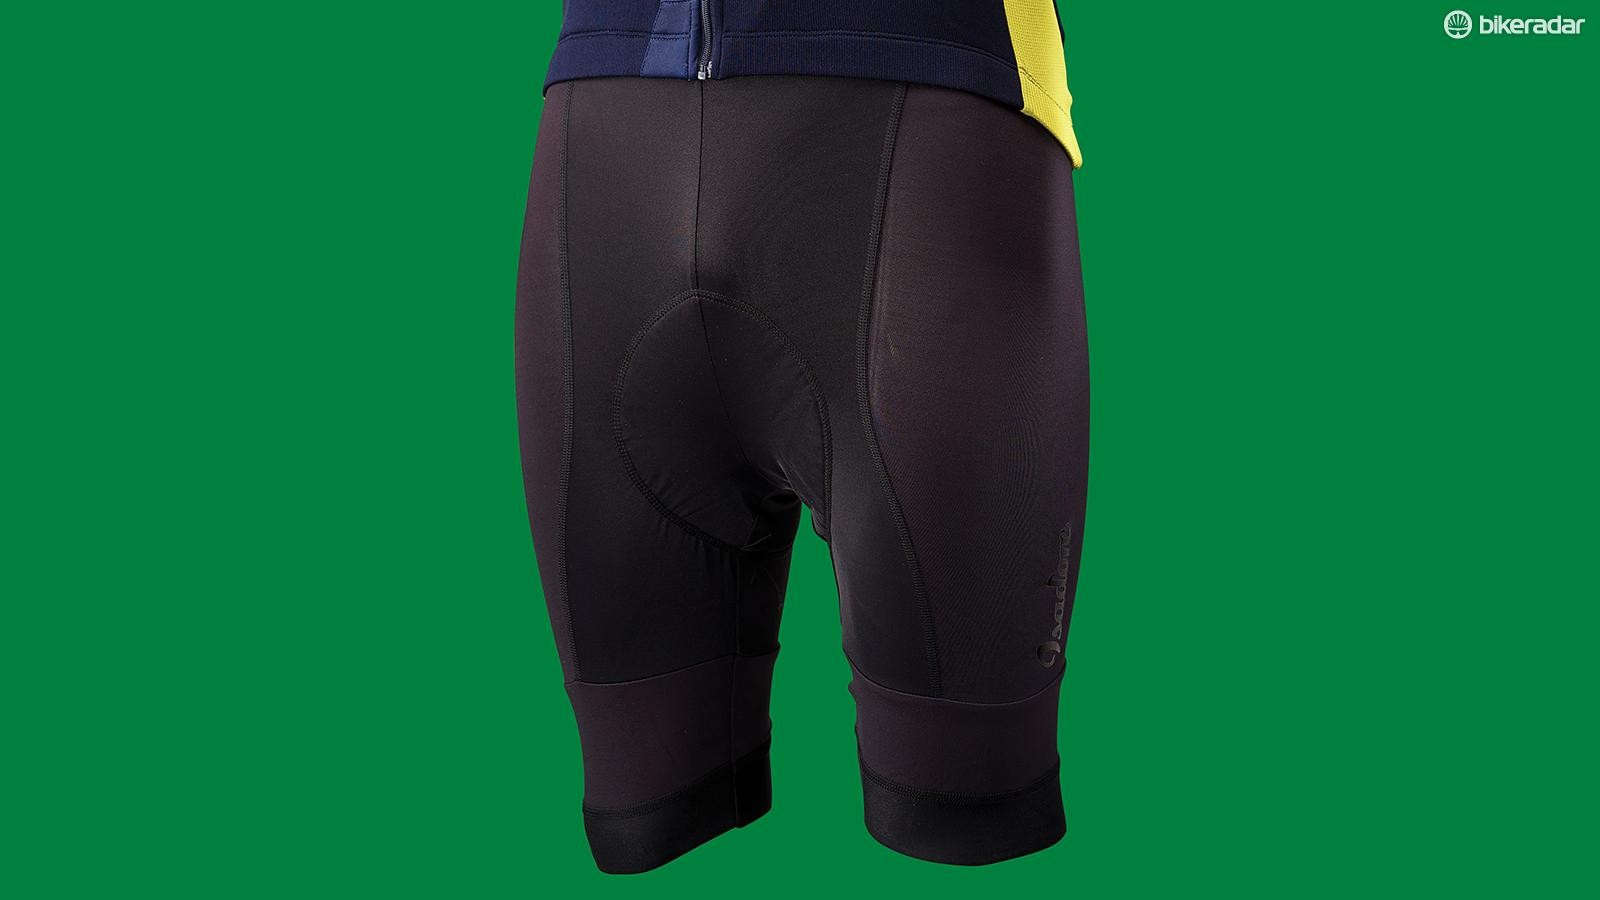 The Slovakian-made bib shorts major on comfort and fit